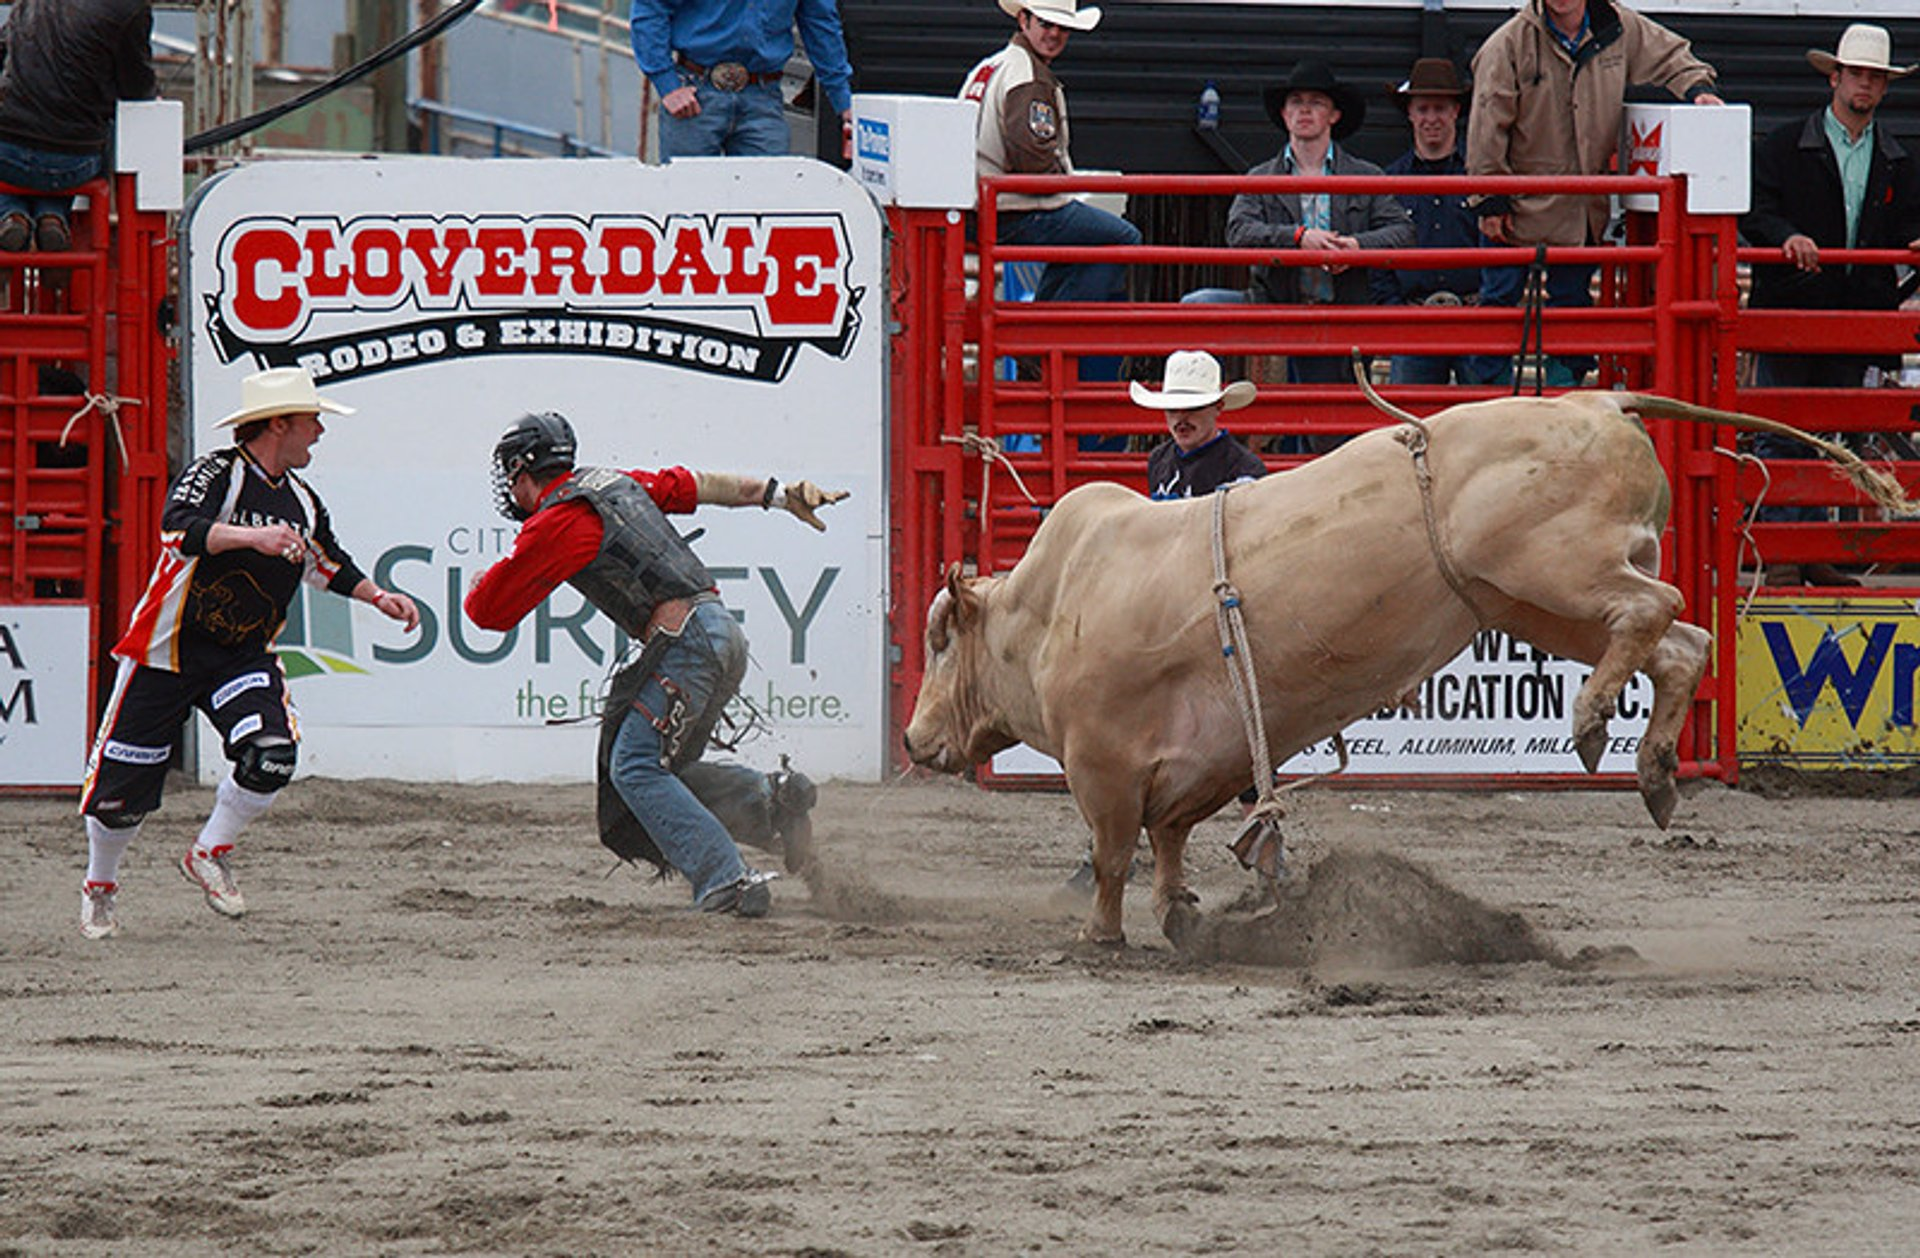 Best time for Cloverdale Rodeo and Country Fair in Vancouver 2020